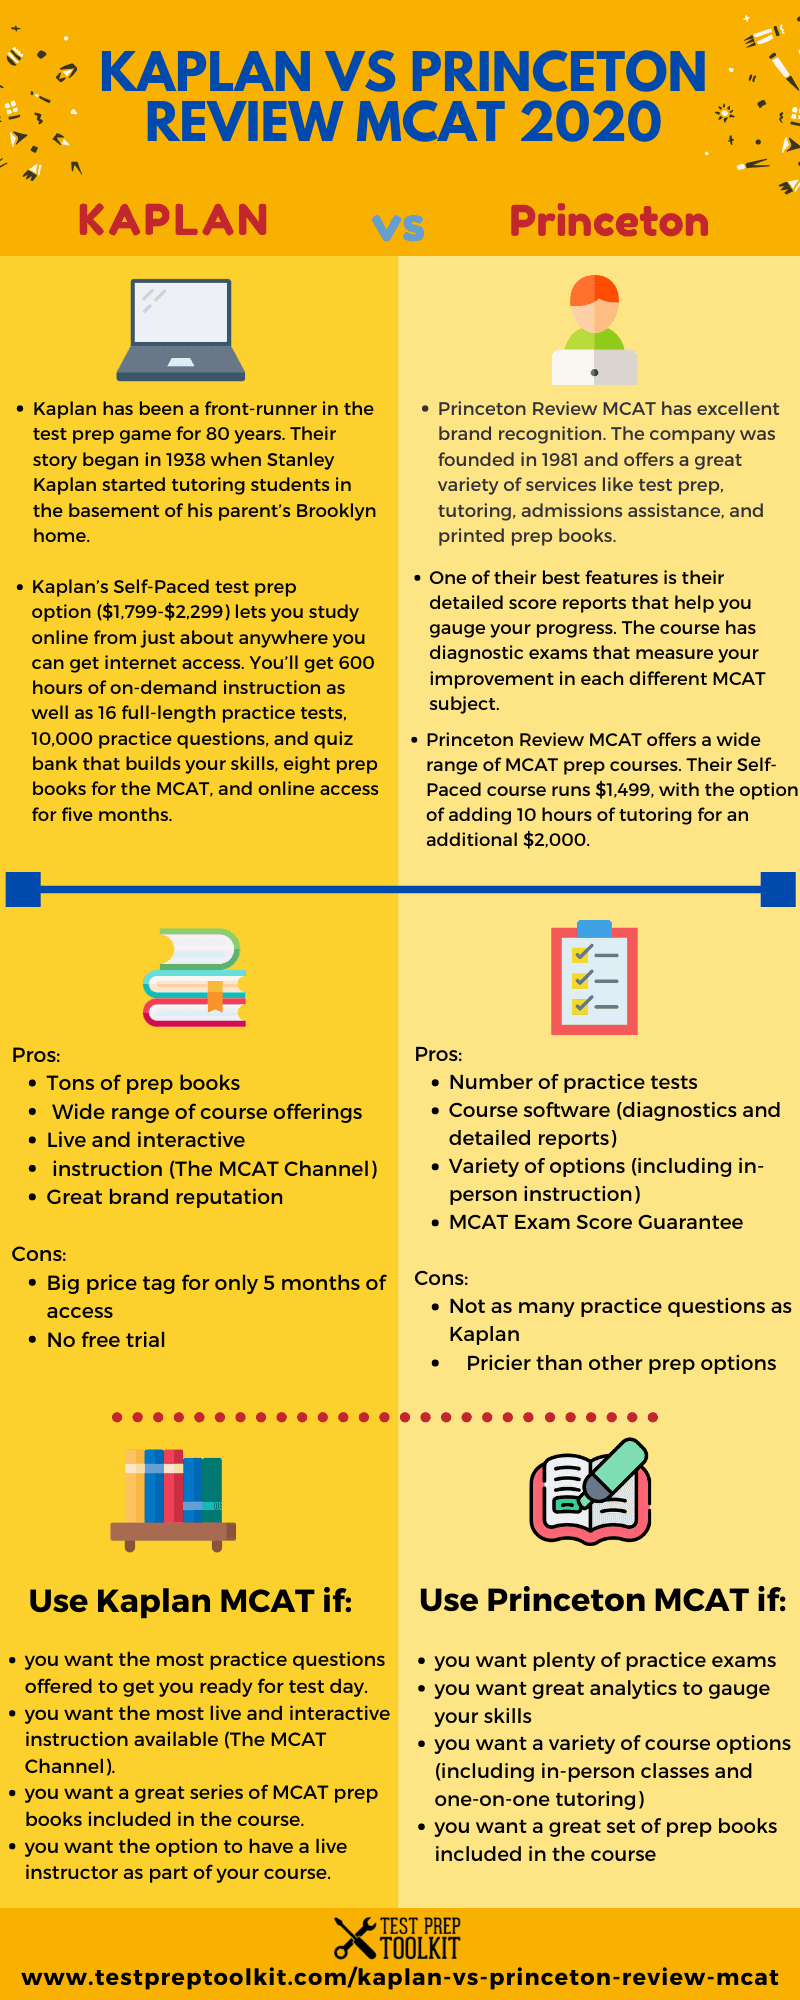 KAPLAN MCAT REVIEW